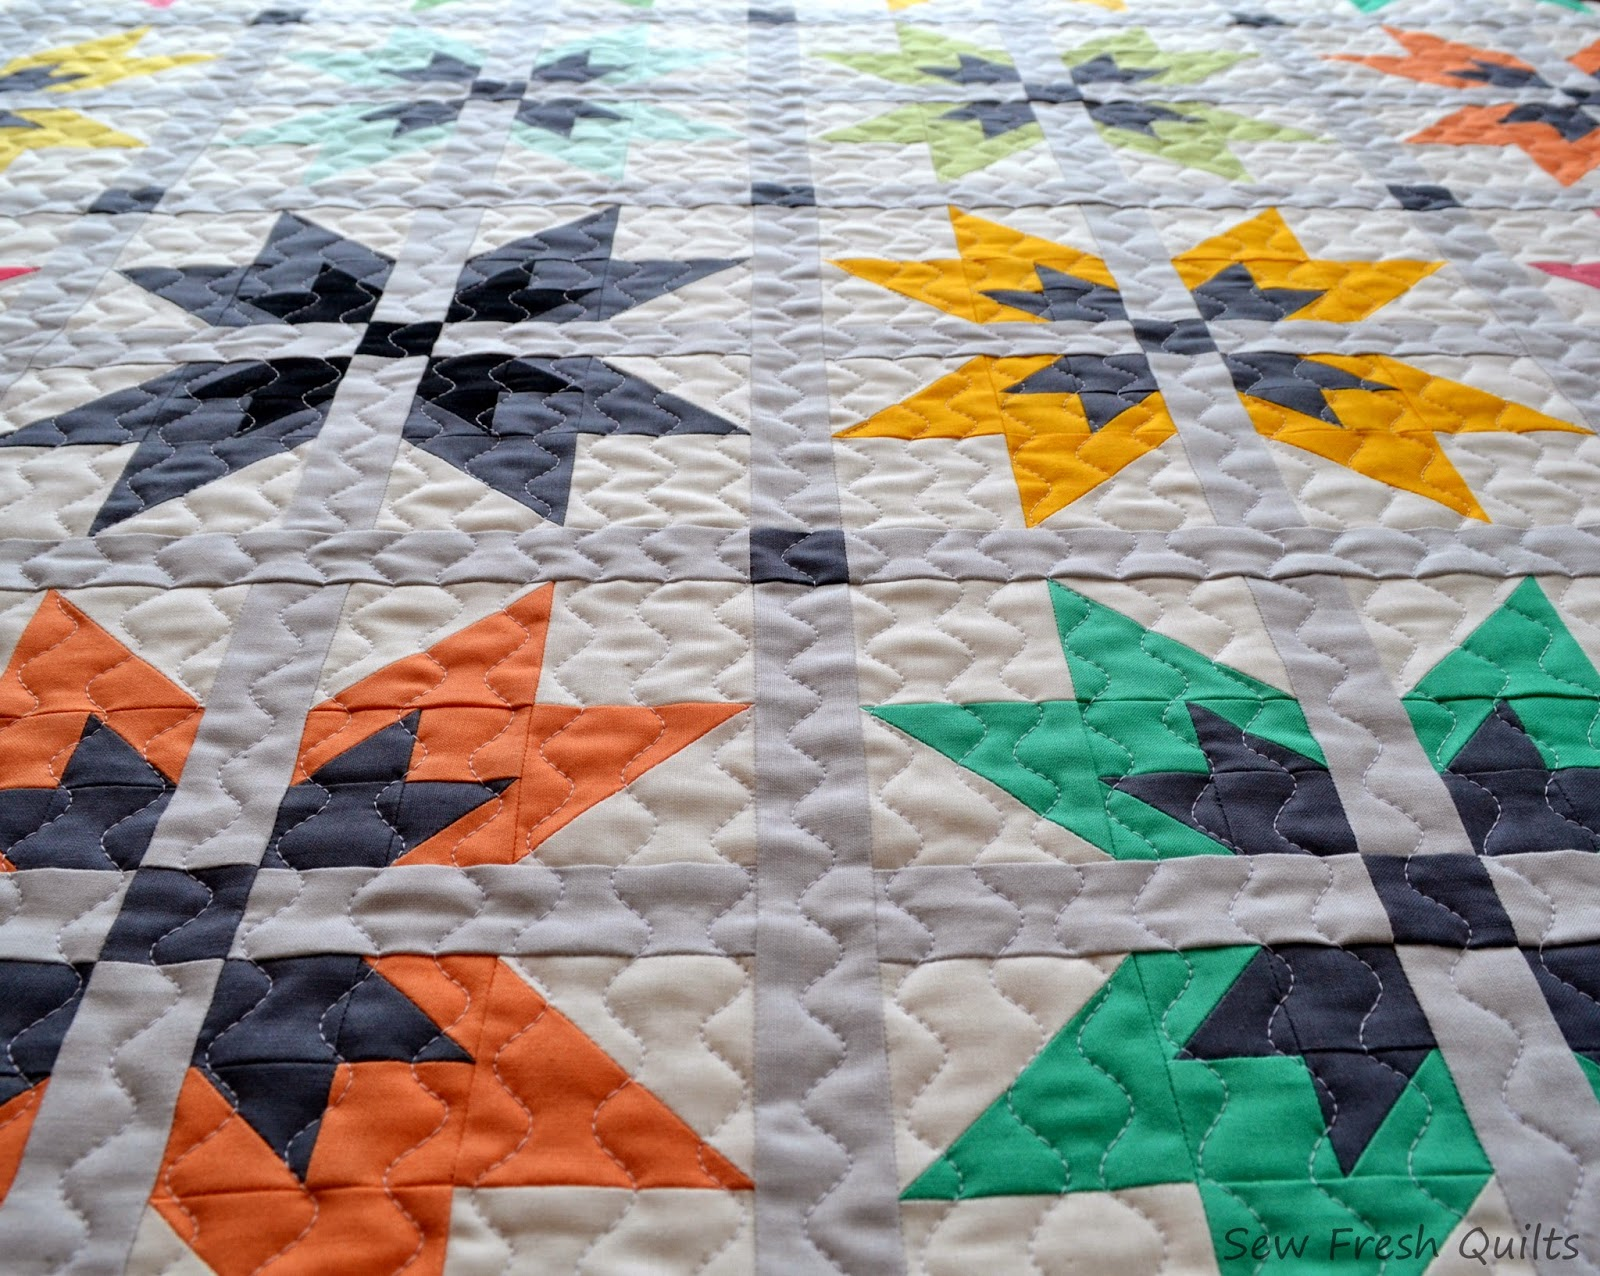 Sew Fresh Quilts: Top 10 Tips for New Quilters - Quilting with ... : quilt top stitching - Adamdwight.com